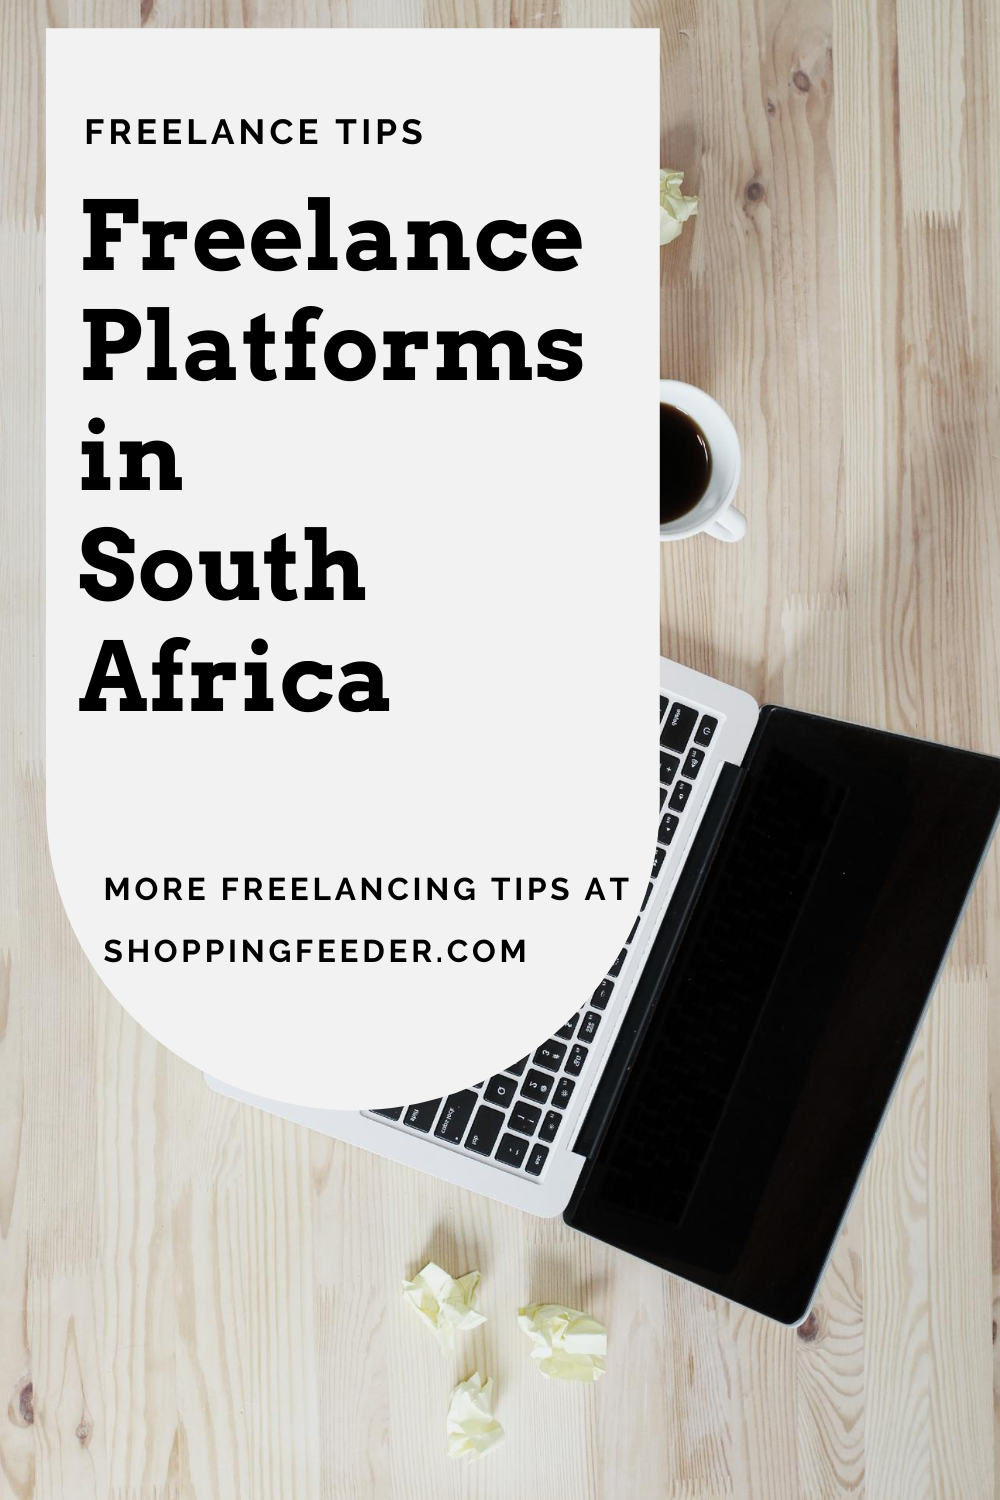 Freelance Jobs For Students In South Africa